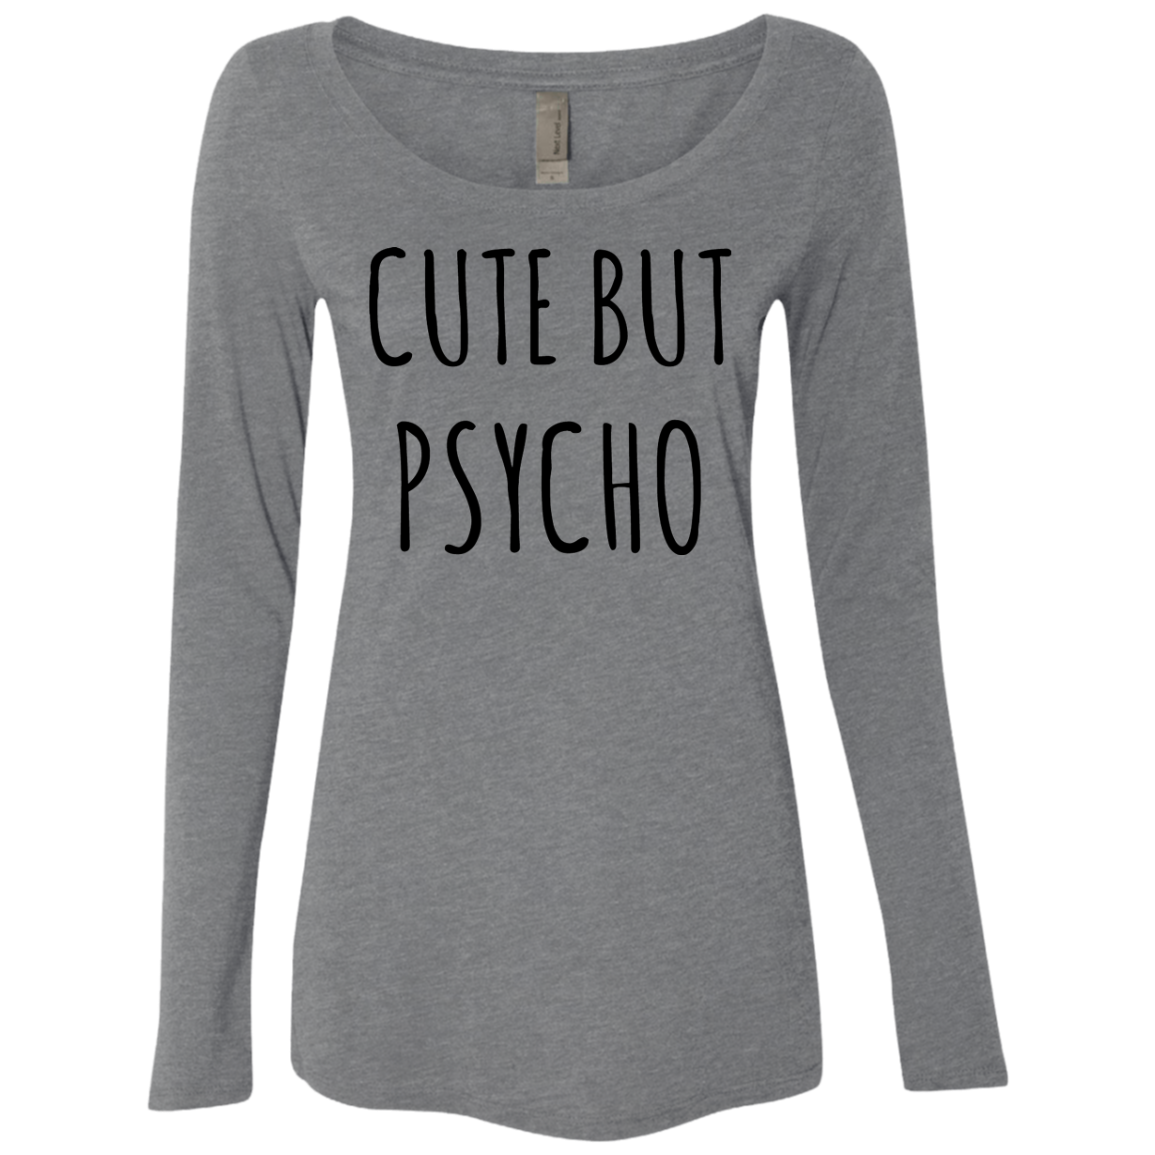 Cute But Psycho Women's Long Sleeve Tee - Trendy Tees